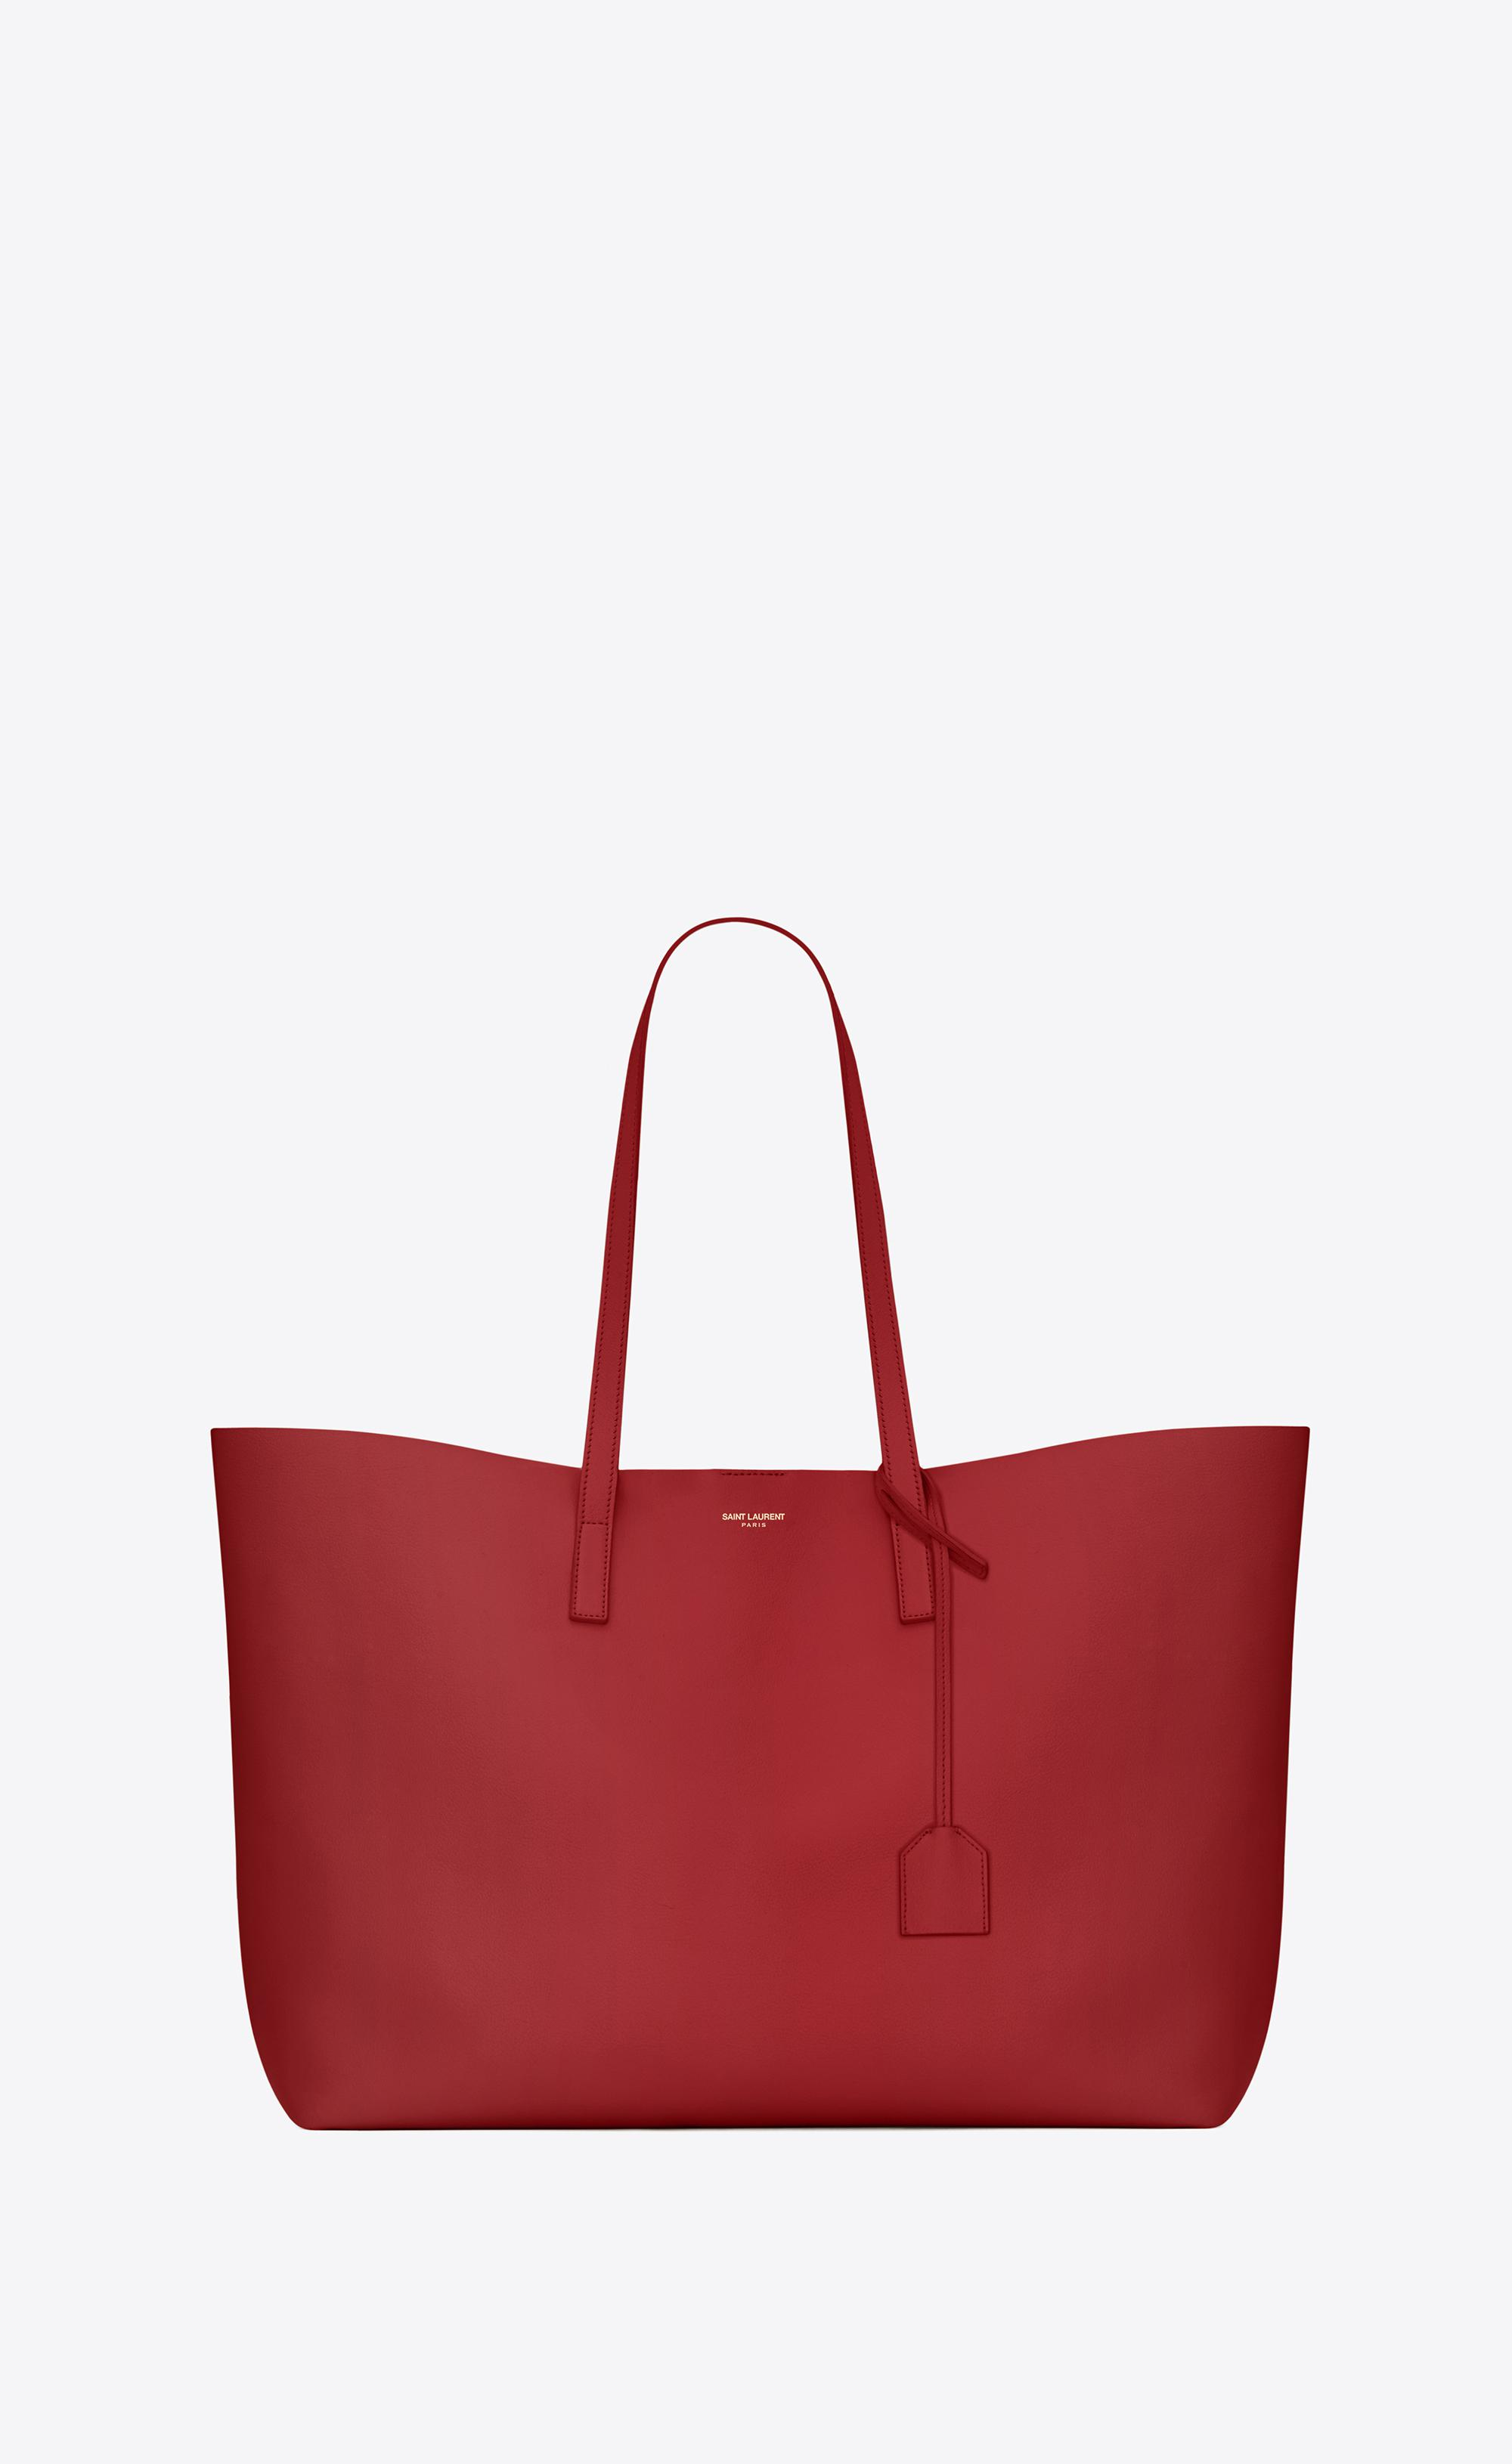 Lyst - Saint Laurent Shopping Bag E w In Supple Leather in Red fa062f488c1f3